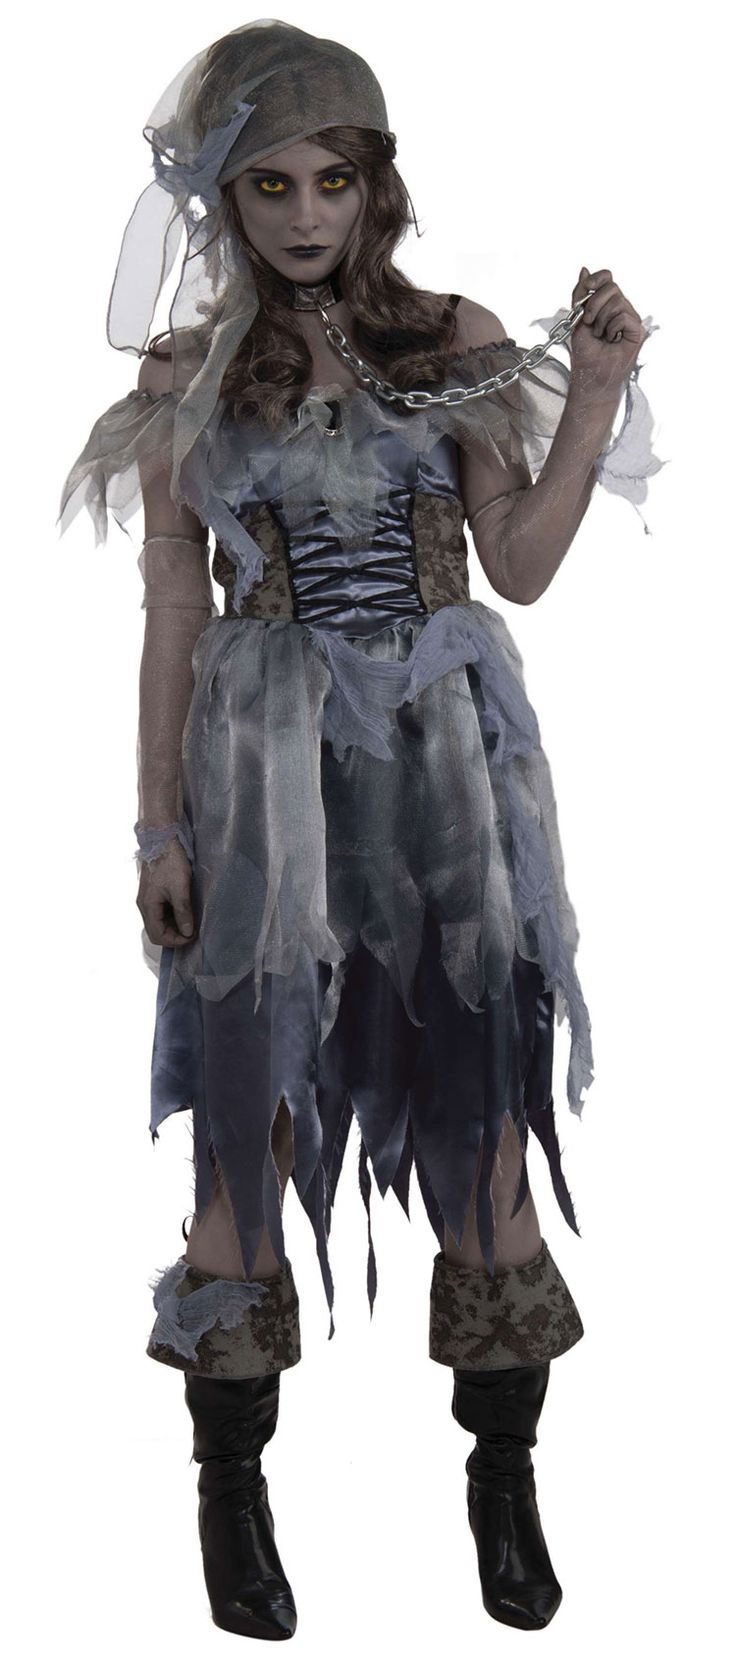 womens zombie pirate costume zombie pirate adult costume nothing like pirate booty thats also a zombie cutie costume includes sheer headpiece - Pirate Halloween Costume For Women